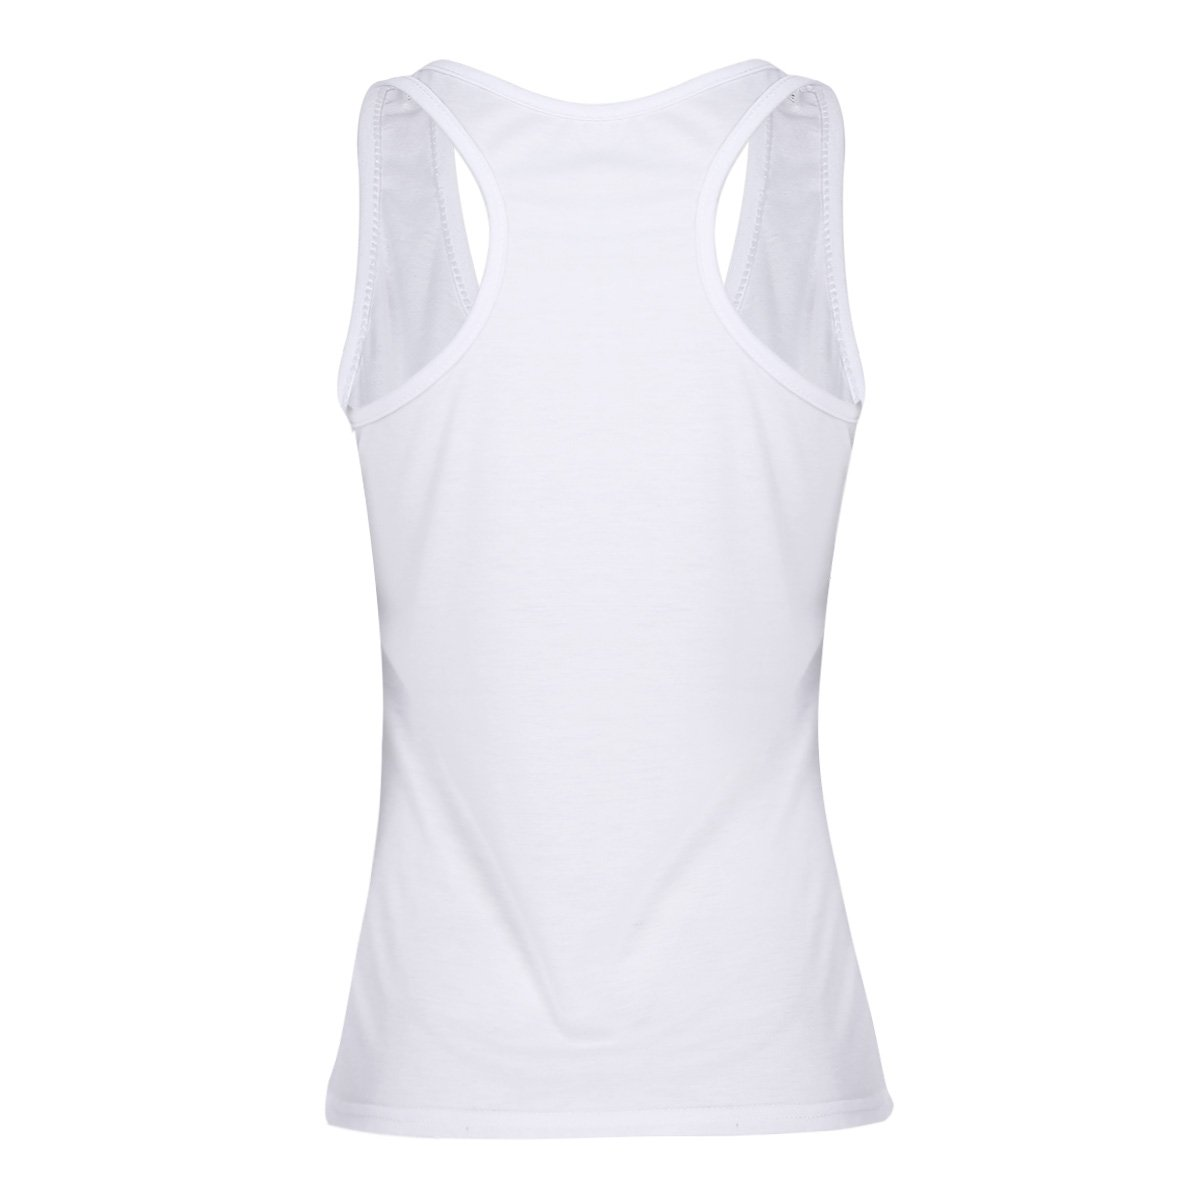 YiZYiF Womens Scoop Neck Racerback Bride Bridal Workout Tank Tops Vest